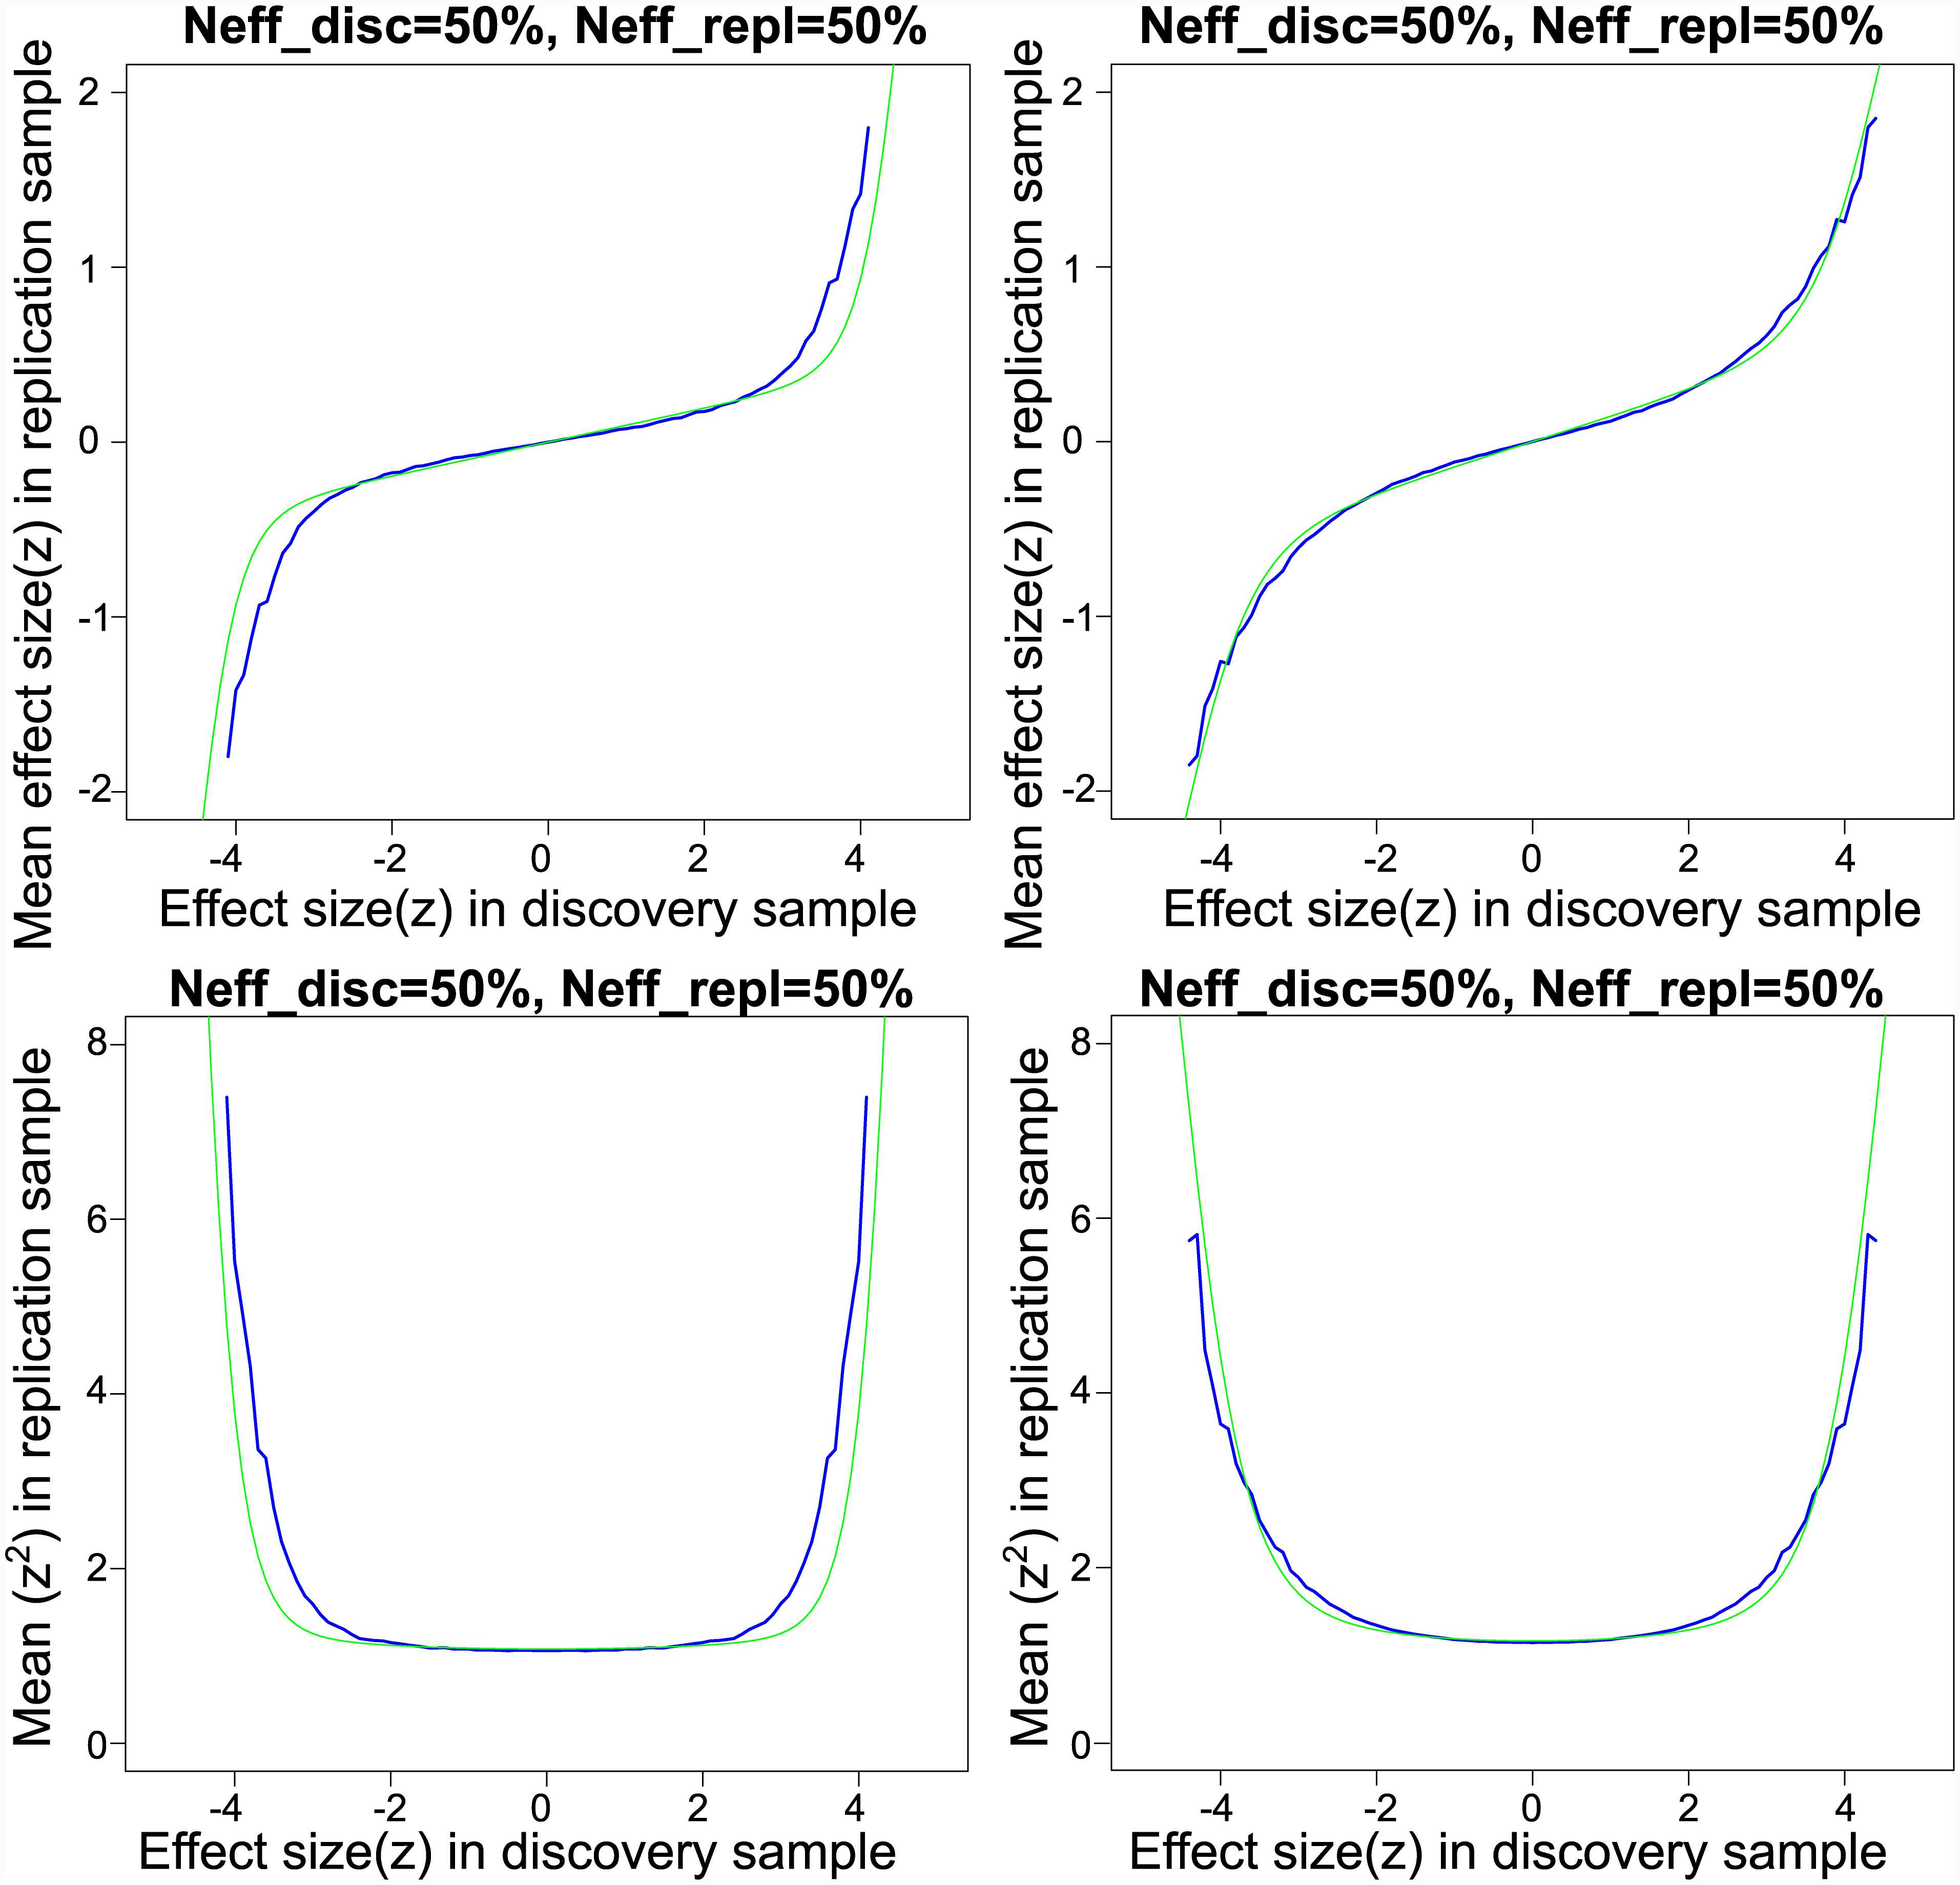 Empirical and model-based posterior expectations and variances for schizophrenia and Crohn's disease.